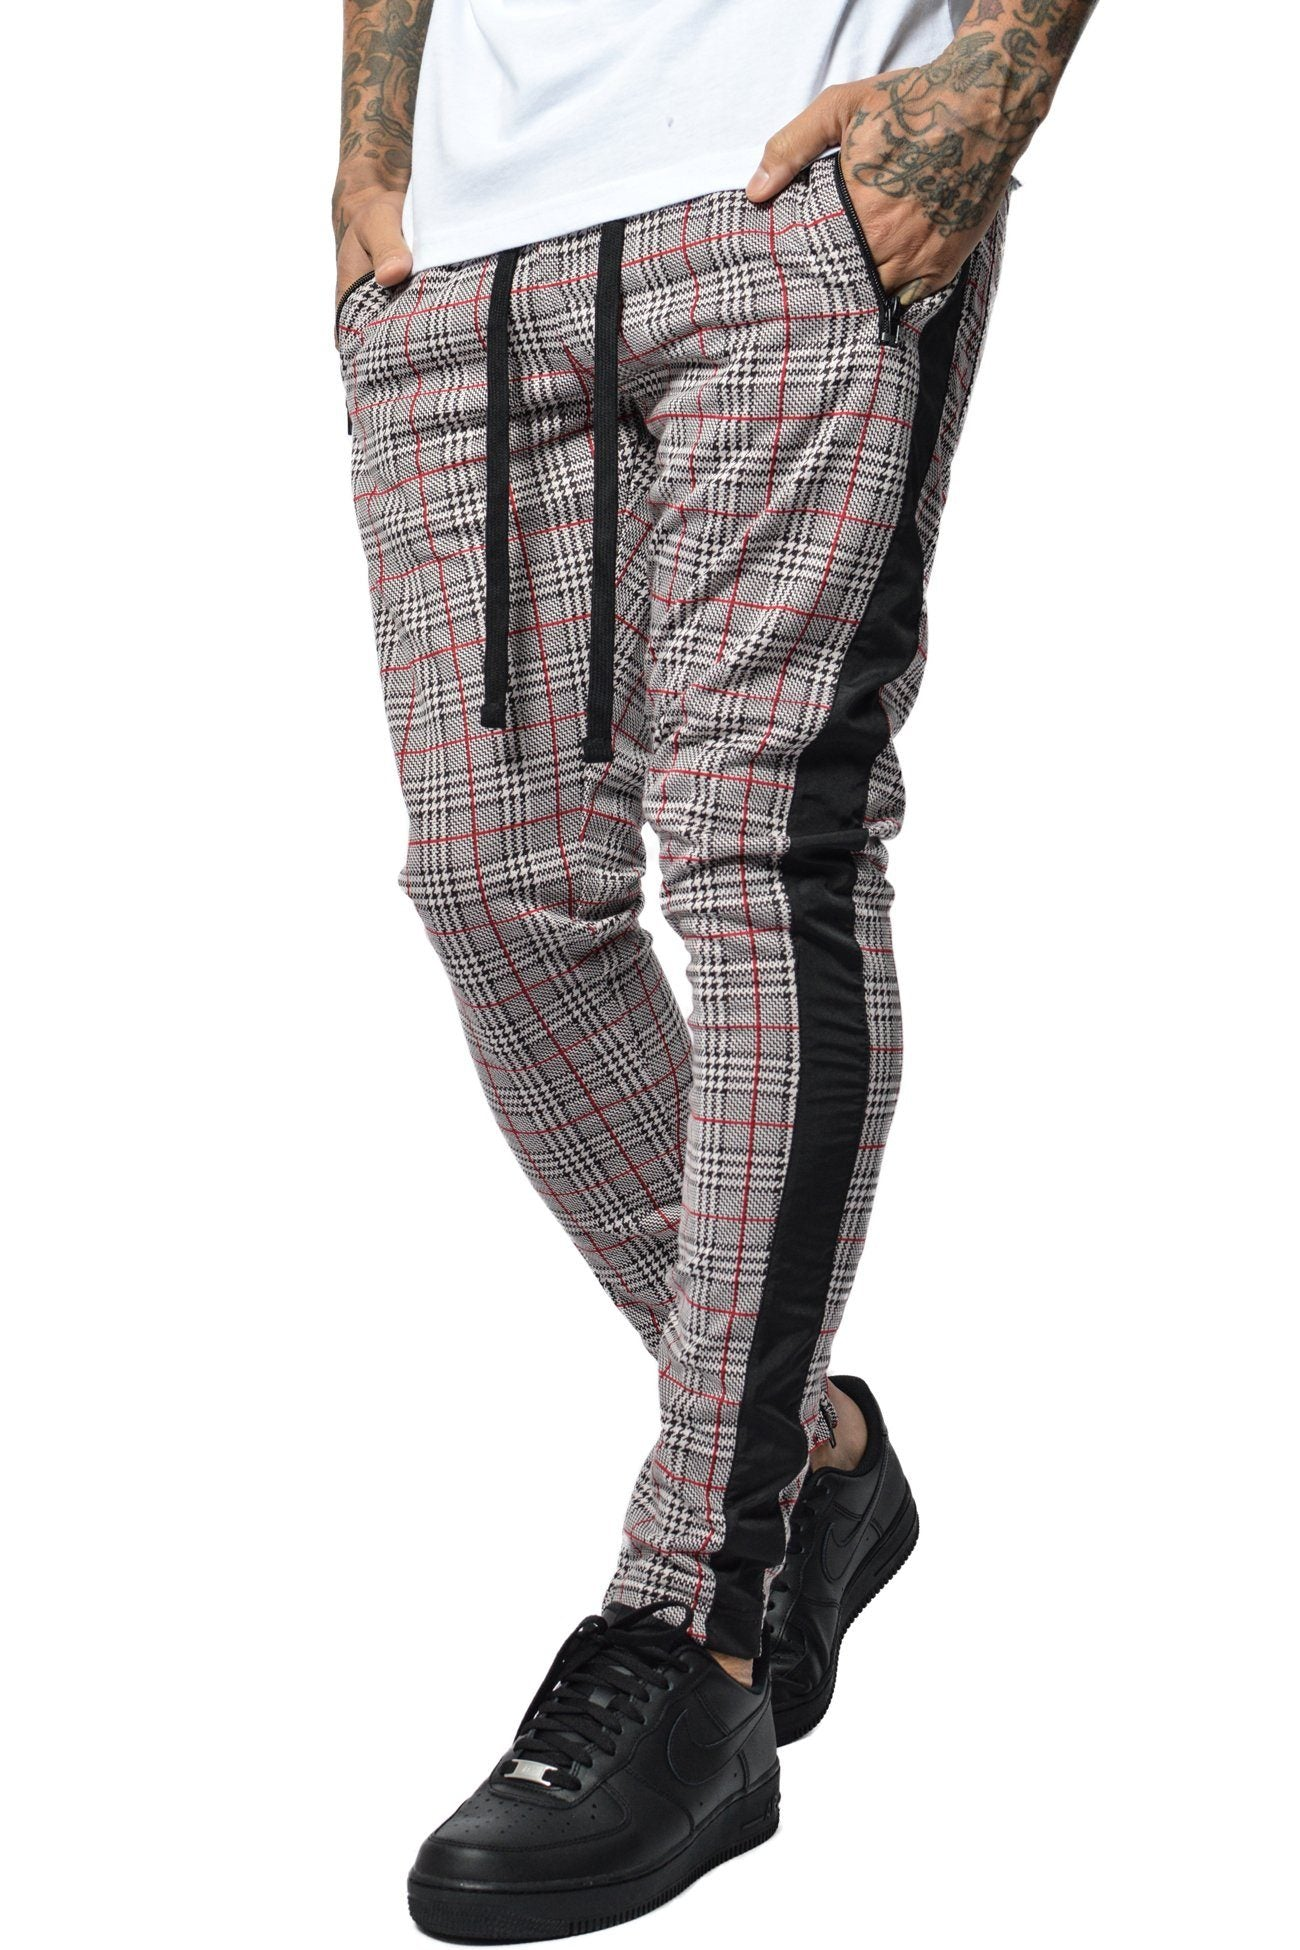 Benjamin Checkered Pants Black White Red - PEGADOR - Dominate the Hype